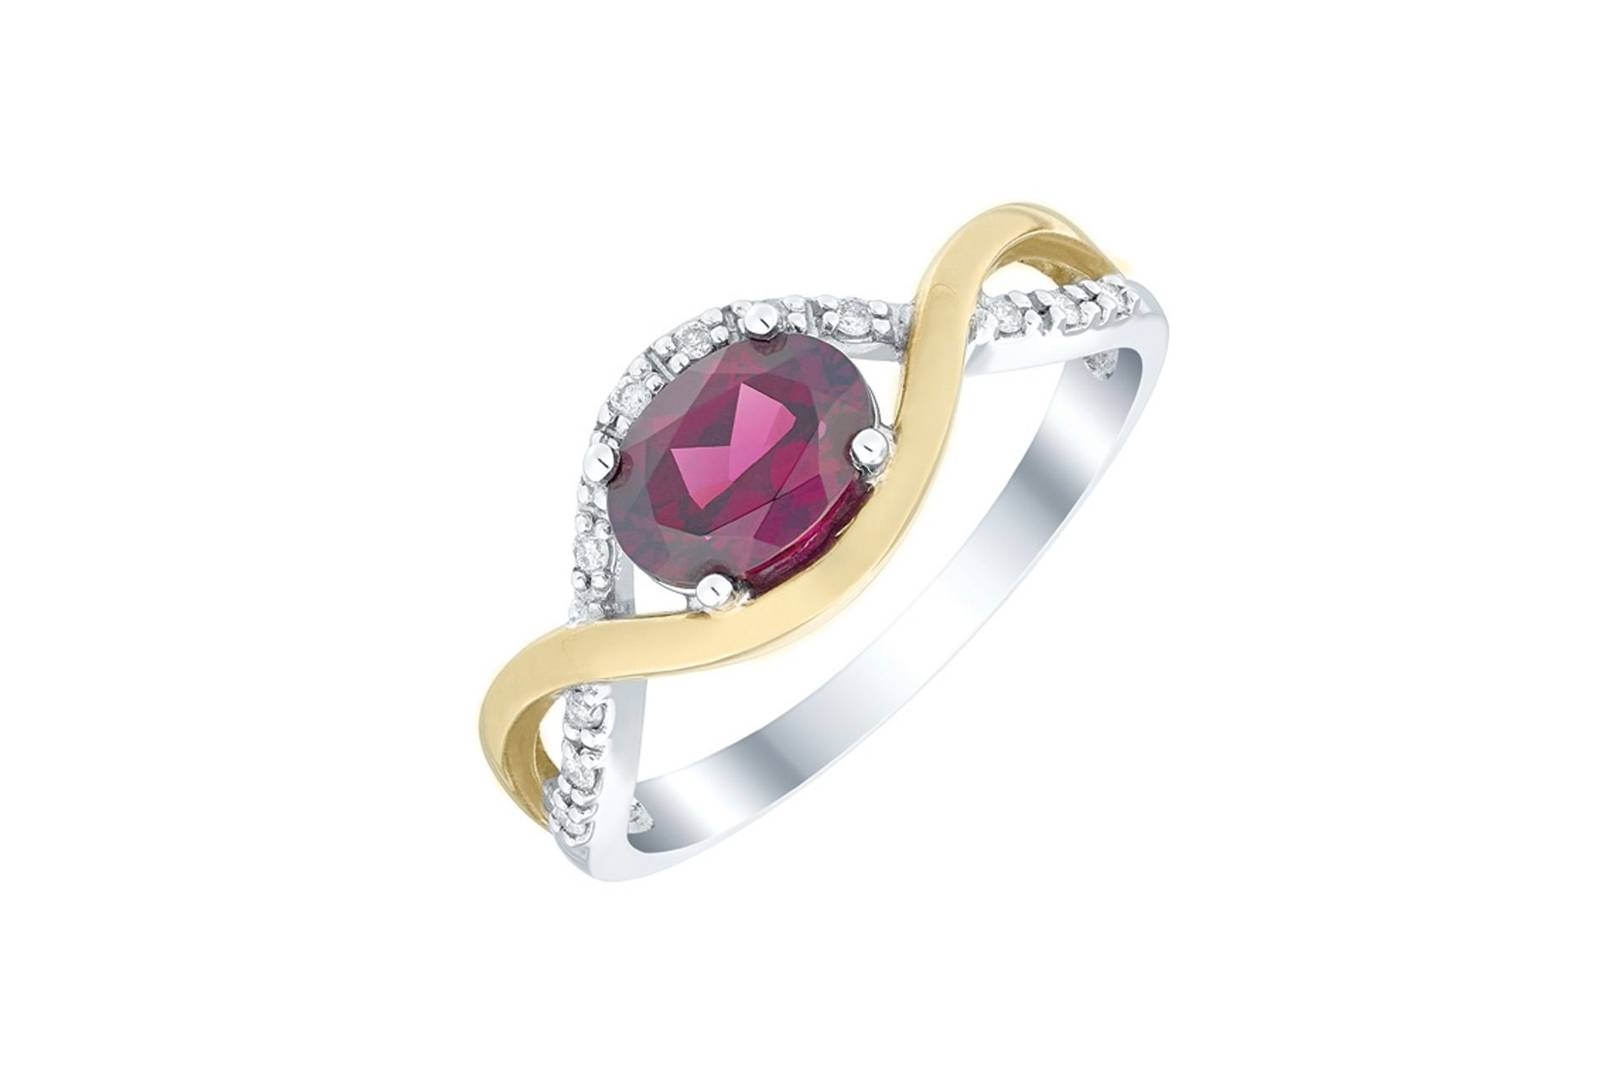 padparadscha moerman best blogs alternative jewelry sapphires baxter saphire engagement rings diamond to peach education